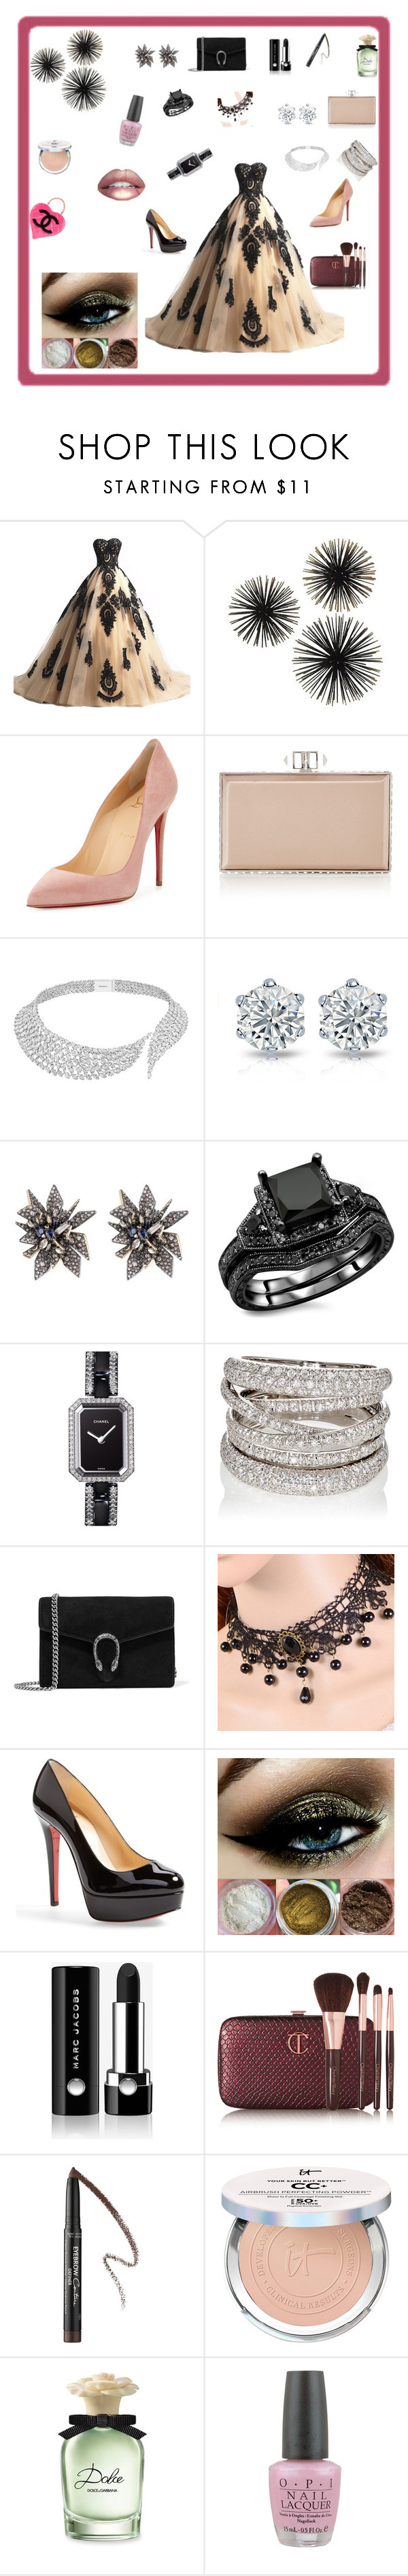 """Noche de Amor."" by gbgerafin ❤ liked on Polyvore featuring Christian Louboutin, Judith Leiber, Messika, Alexis Bittar, Chanel, Sidney Garber, Gucci, Marc Jacobs, Charlotte Tilbury and Givenchy"